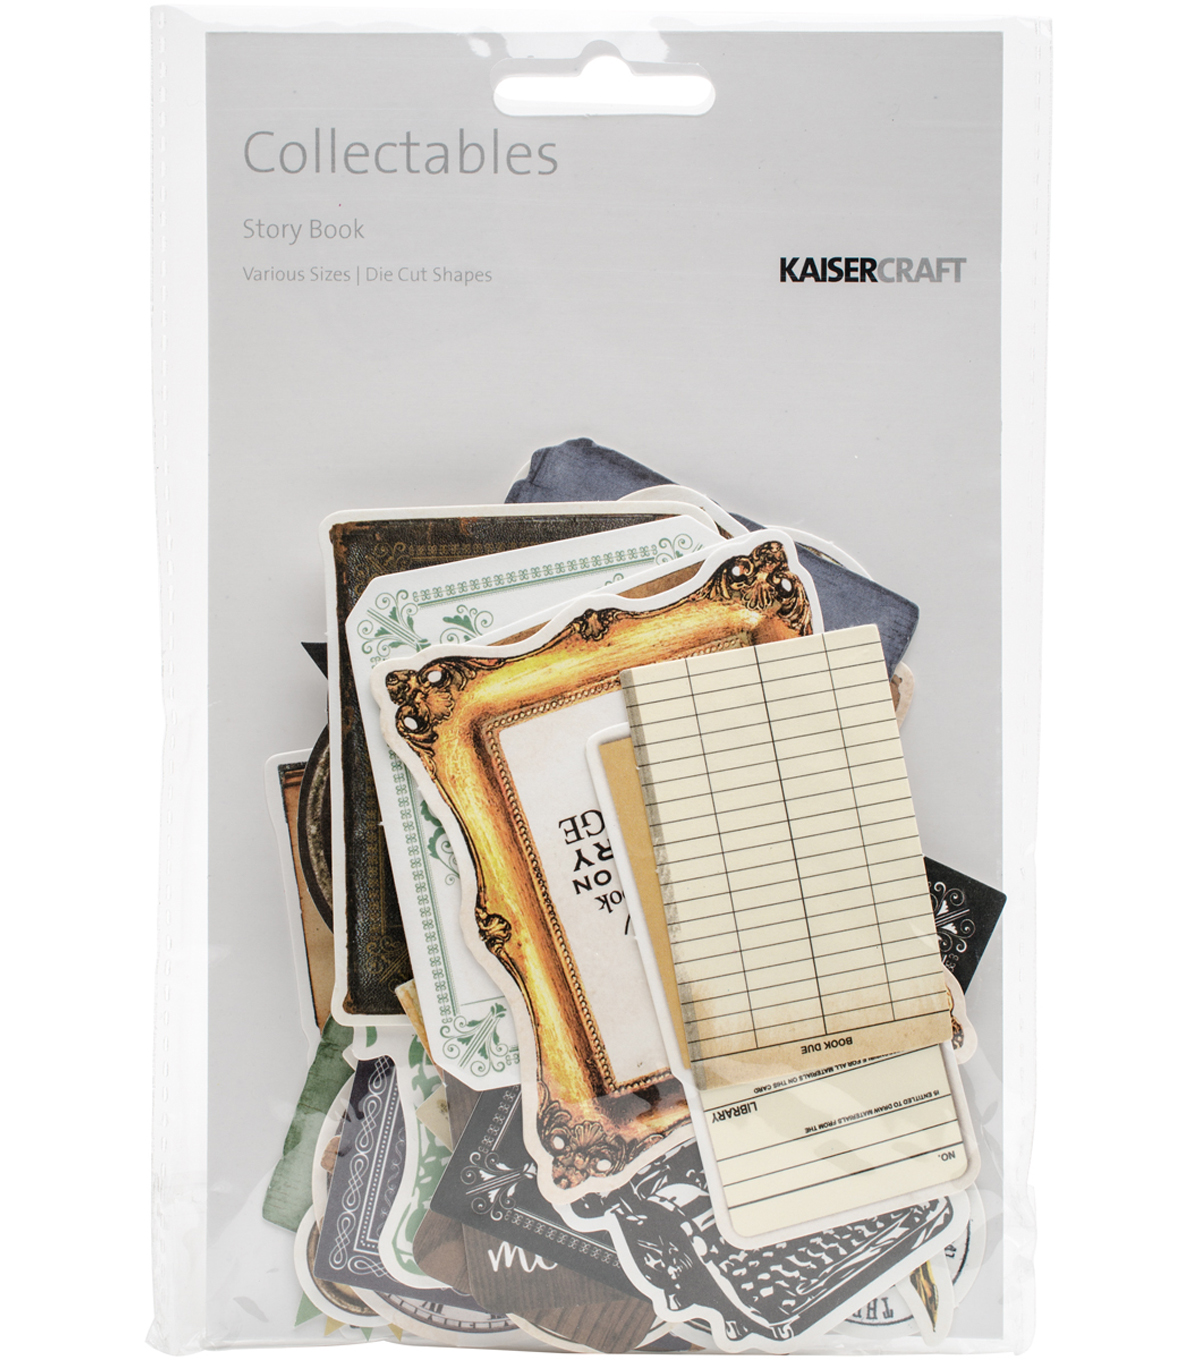 Kaisercraft Collectables Cardstock Die-Cuts-Story Book